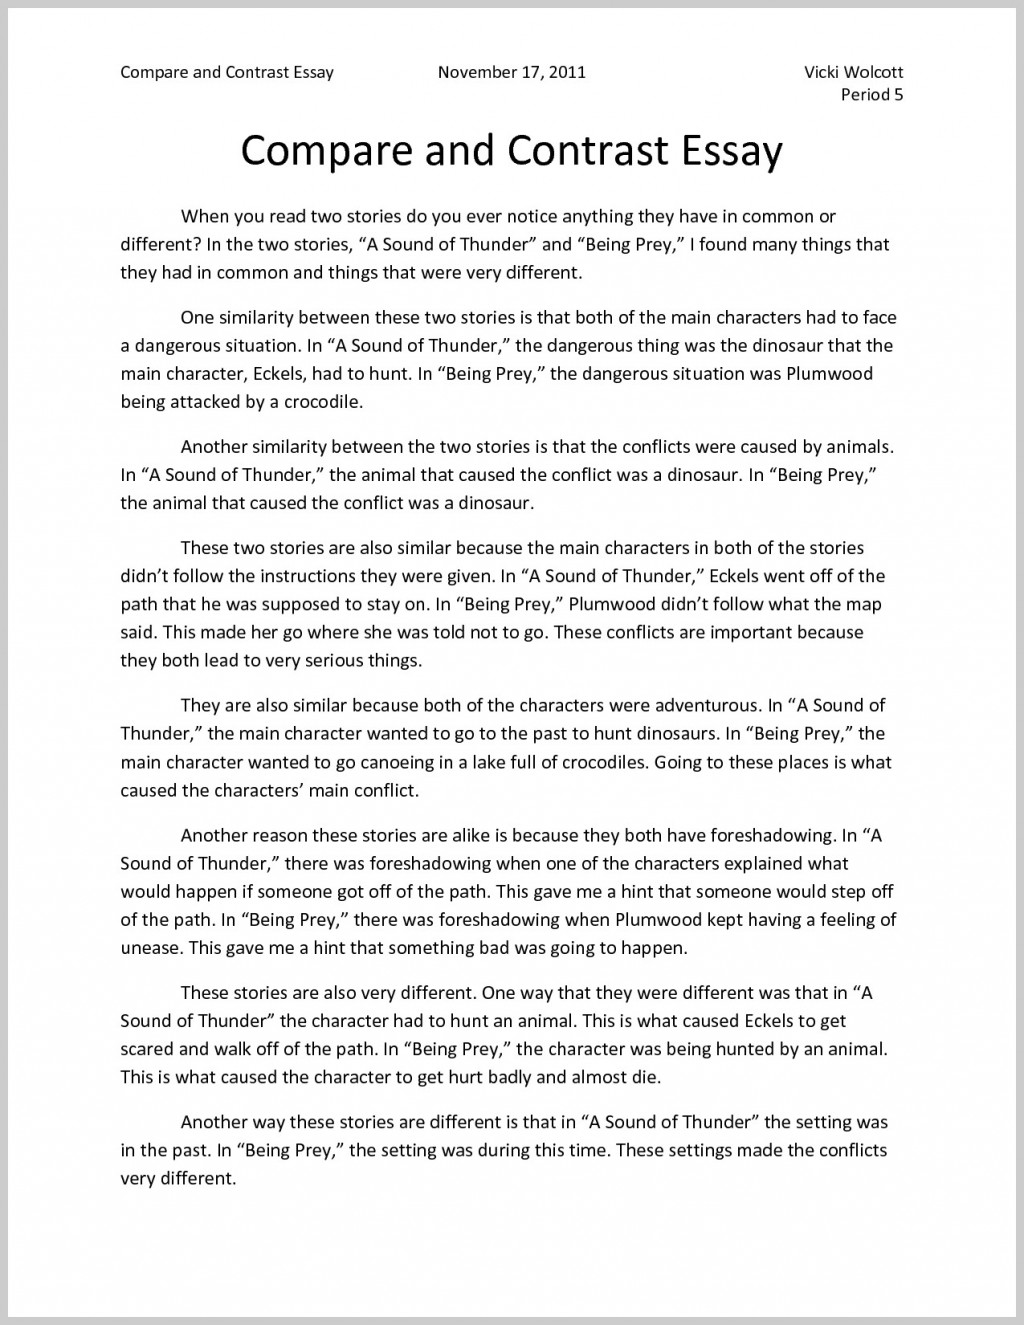 002 What Is Compare And Contrast Essay Example Striking A Does Comparison/contrast Look Like Should Provide Good Topic Sentence For Large